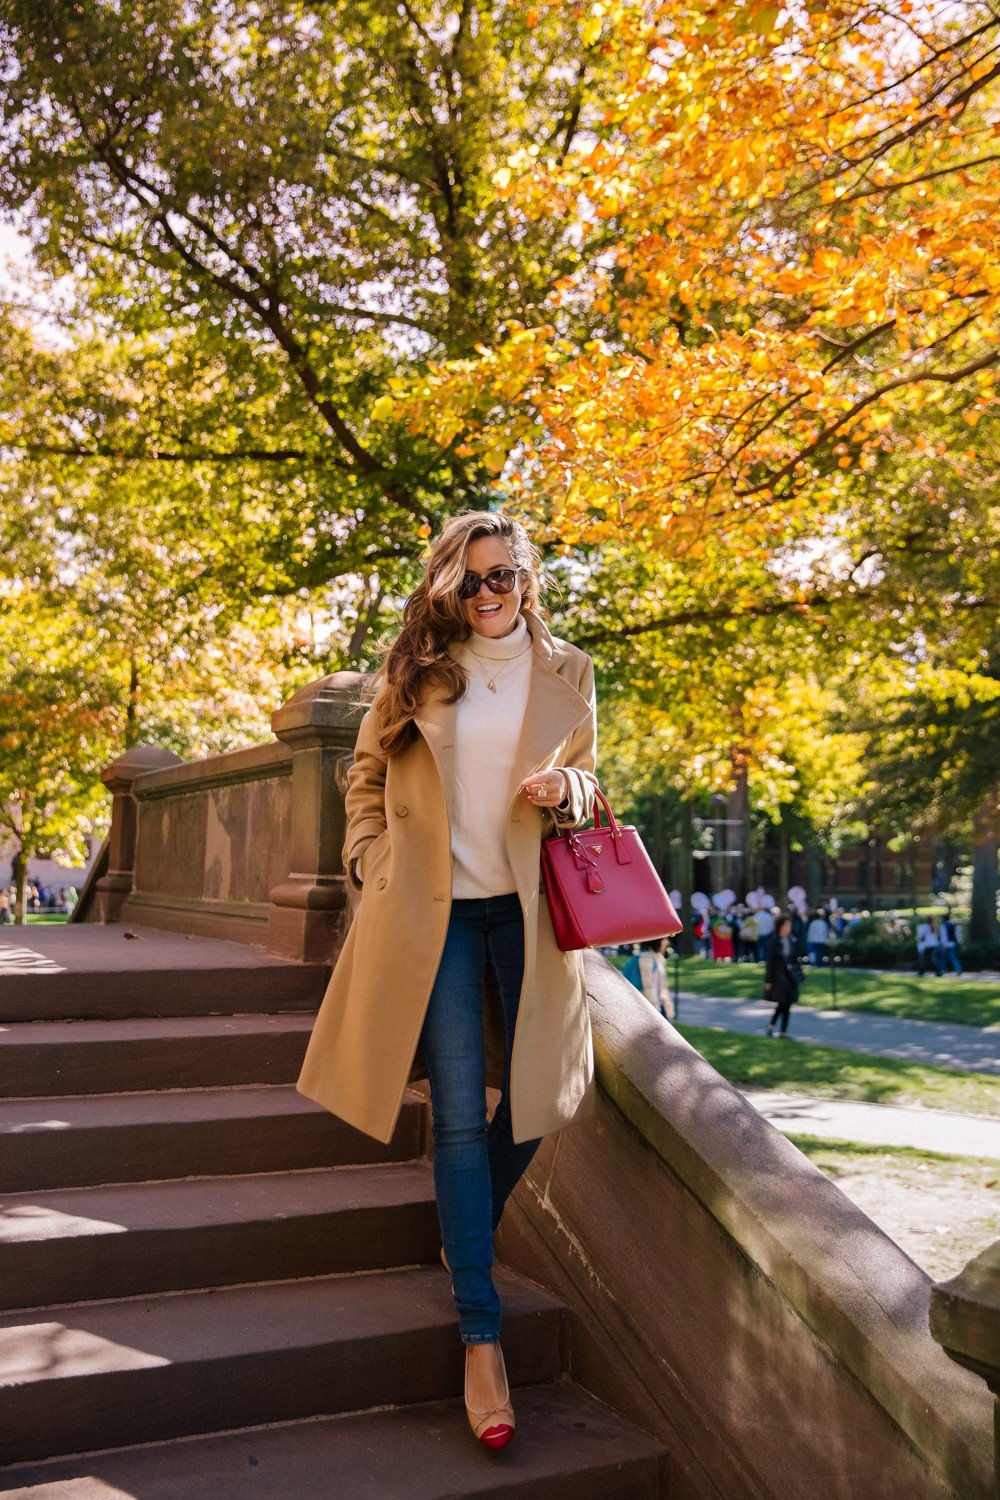 Classic fall style (plus 40% off the coat!)